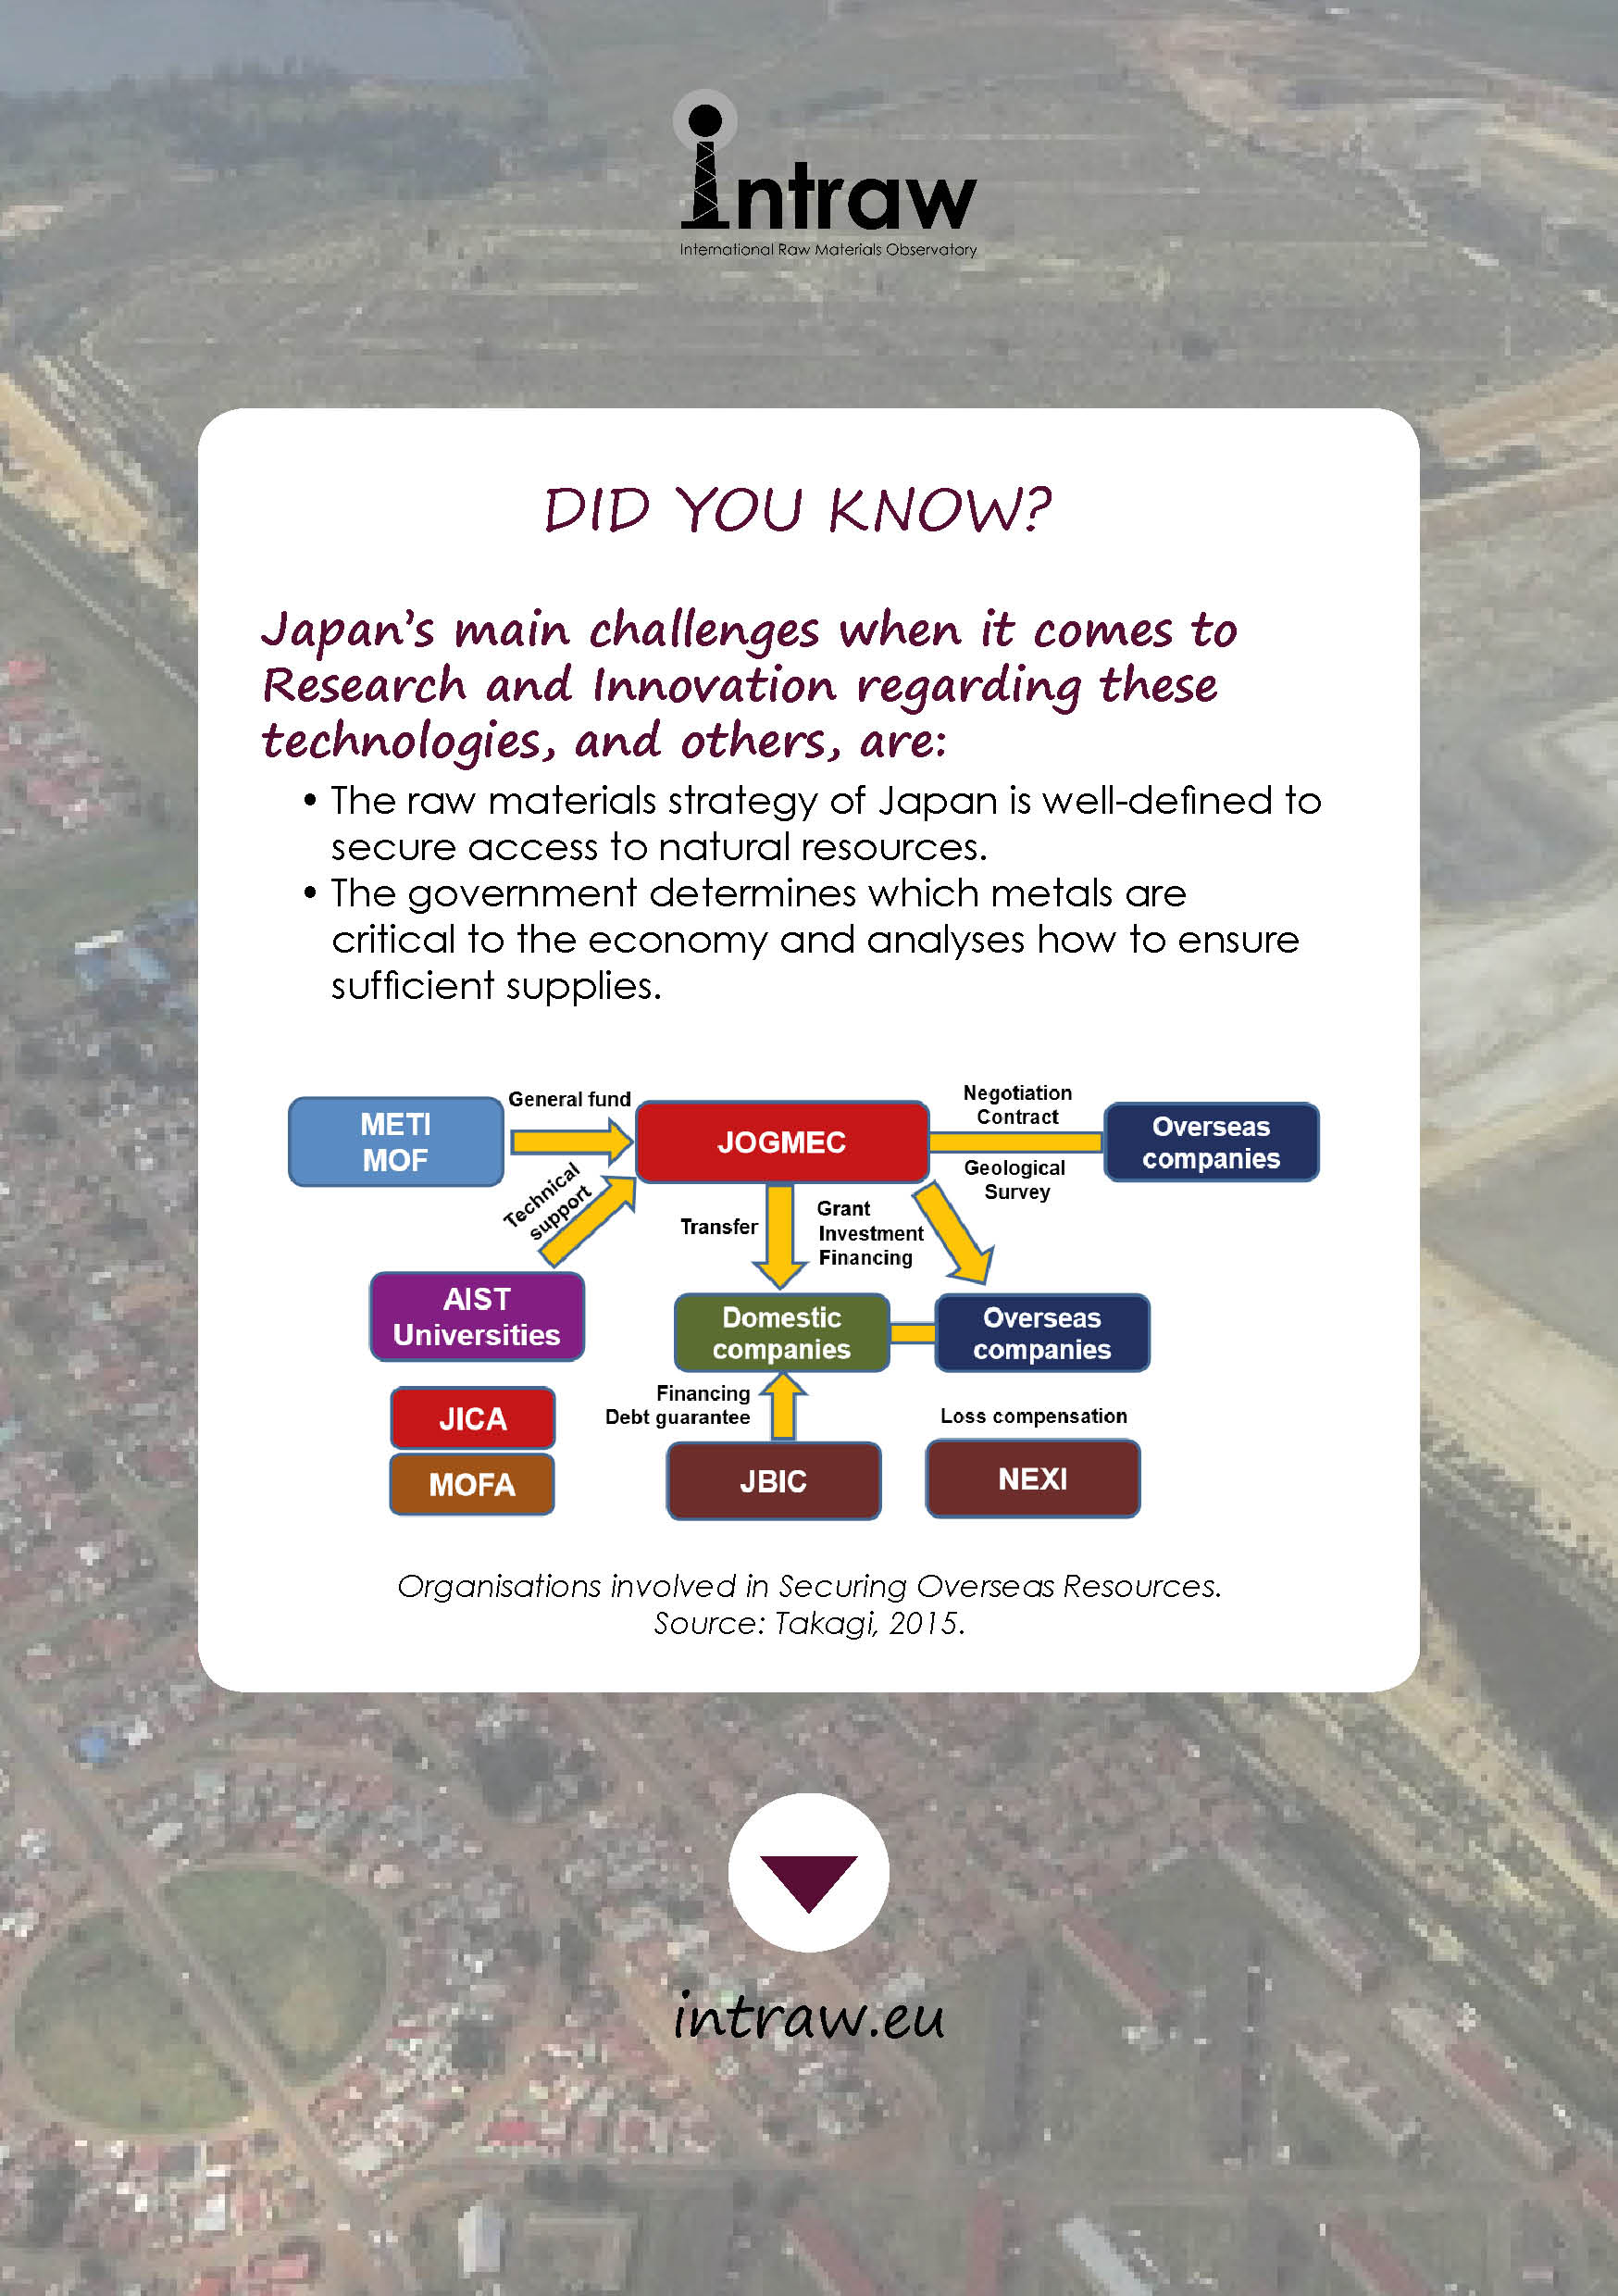 Have a look at Japan's weaknesses with #ResearchAndInnovation